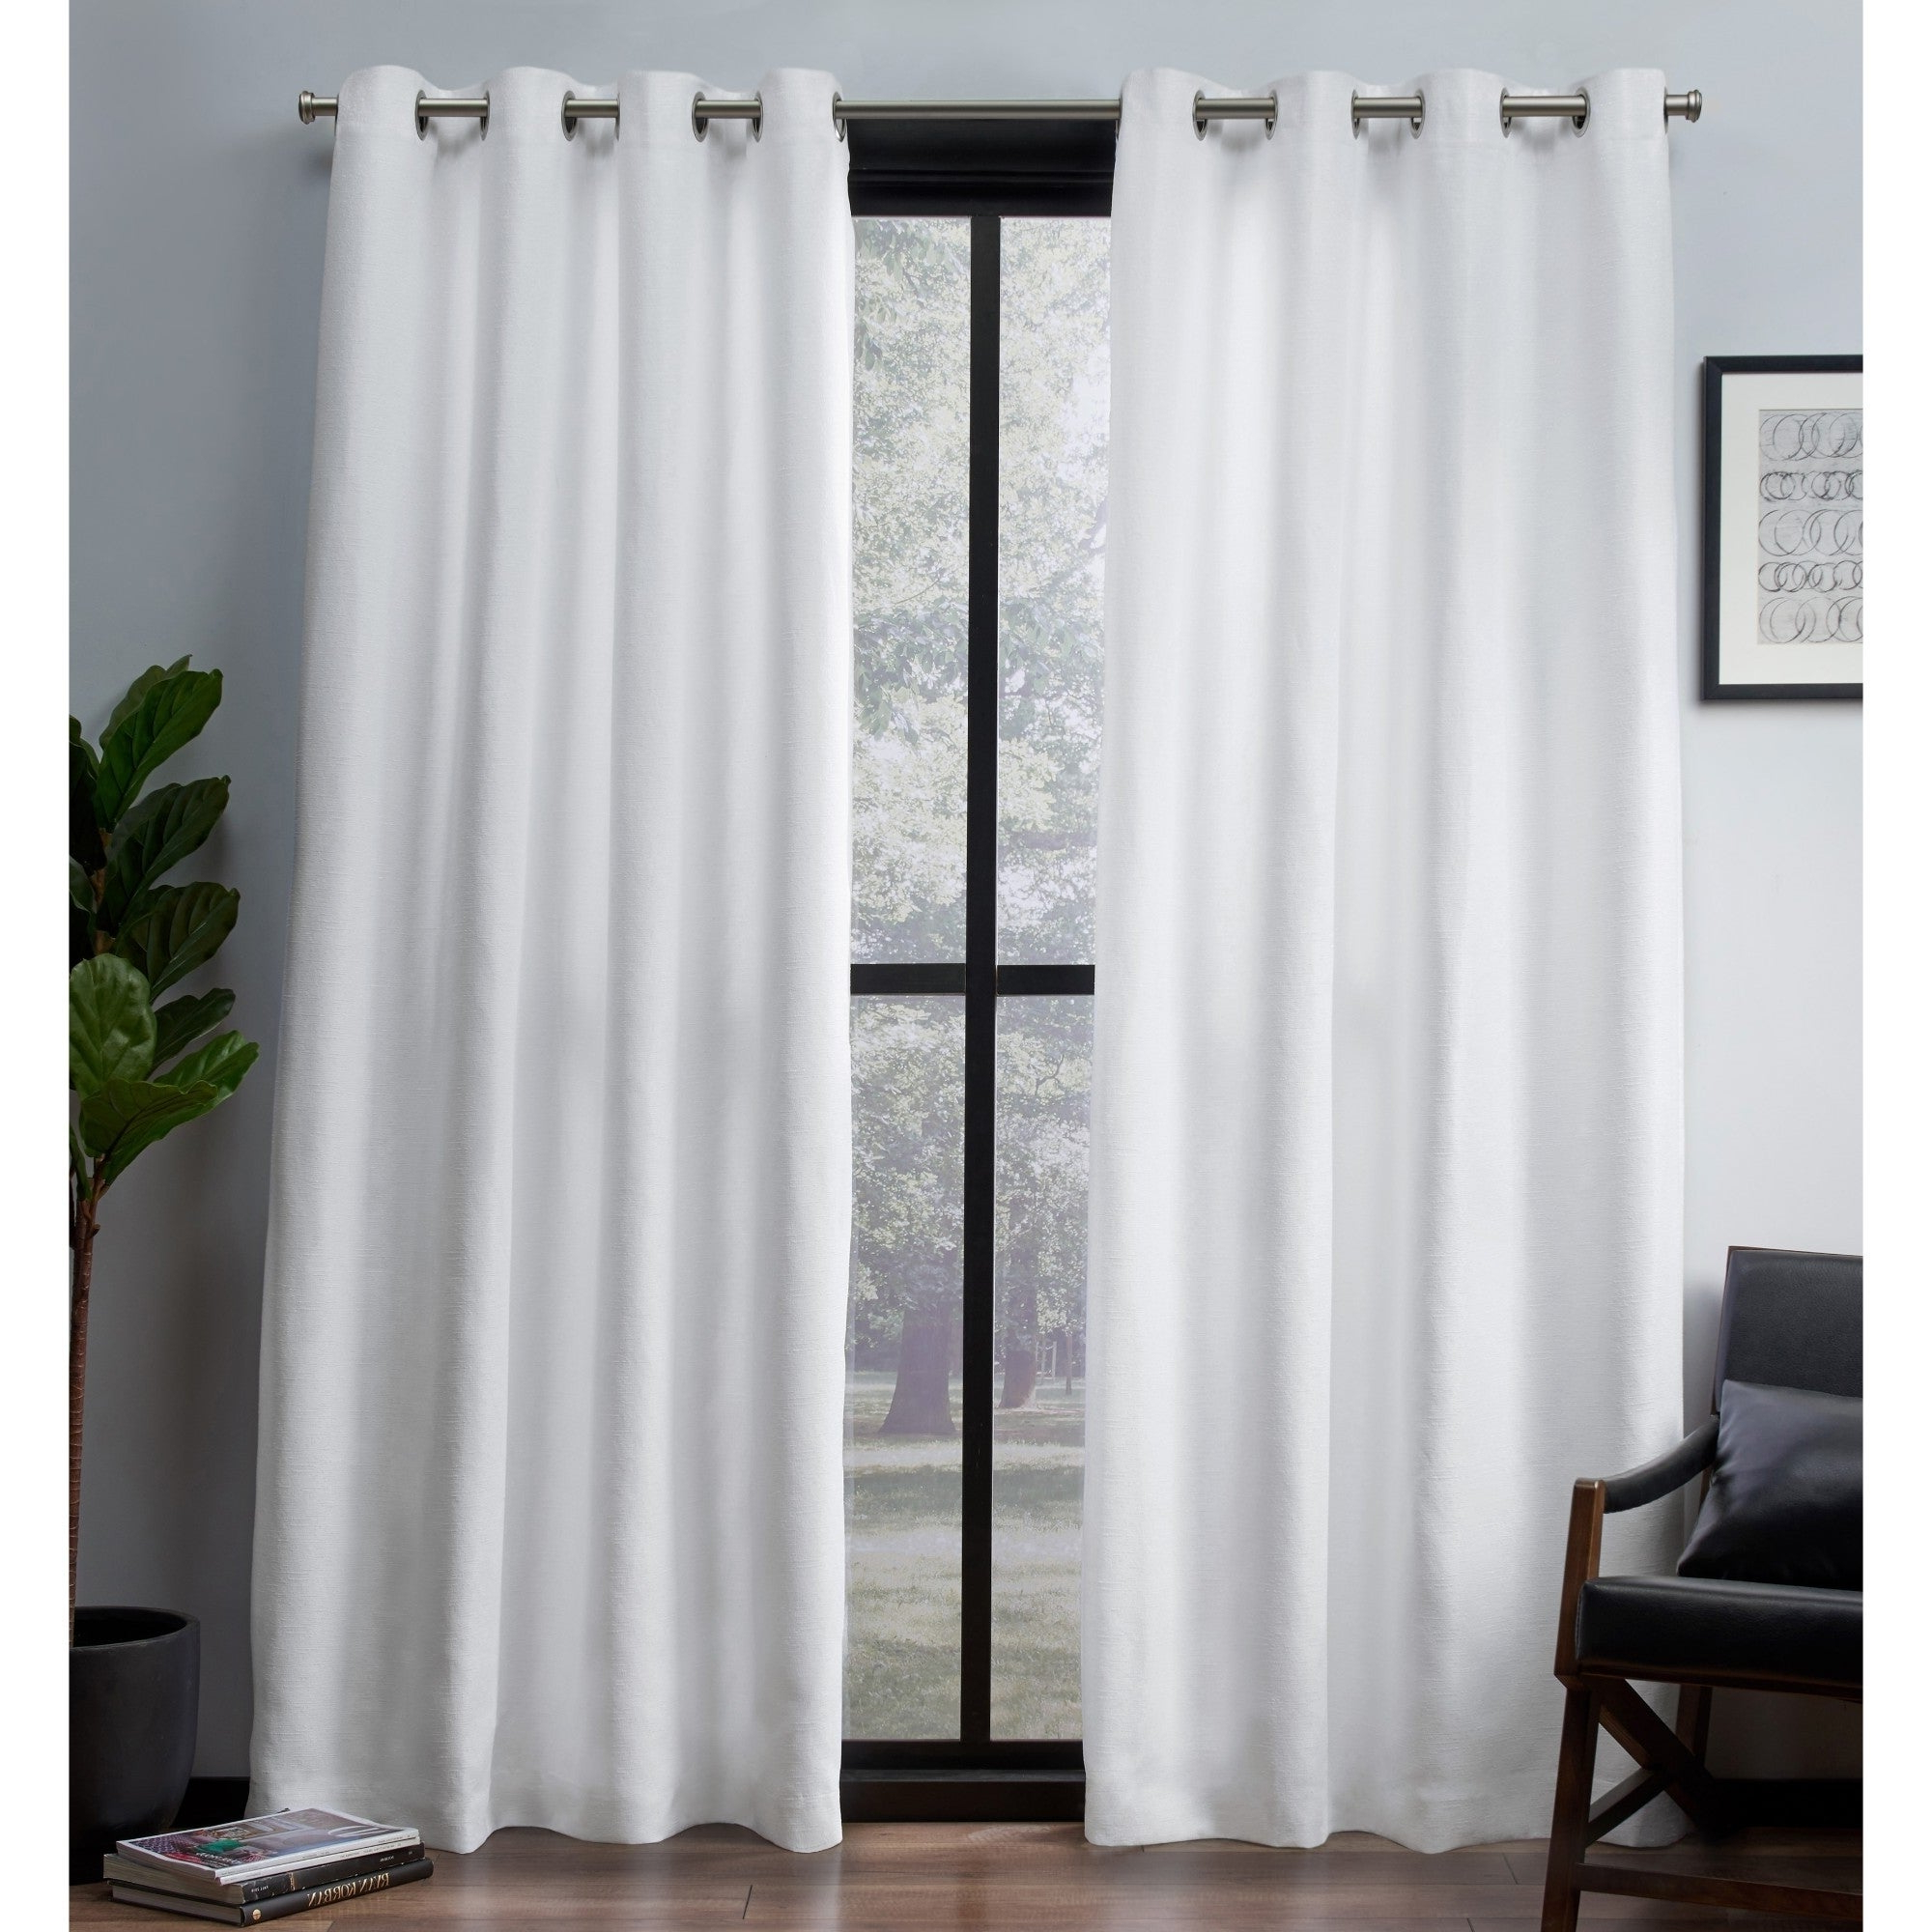 Woven Blackout Curtain Panel Pairs With Grommet Top Throughout Most Popular Ati Home Leeds Slub Woven Blackout Grommet Top Curtain Panel Pair (View 17 of 20)